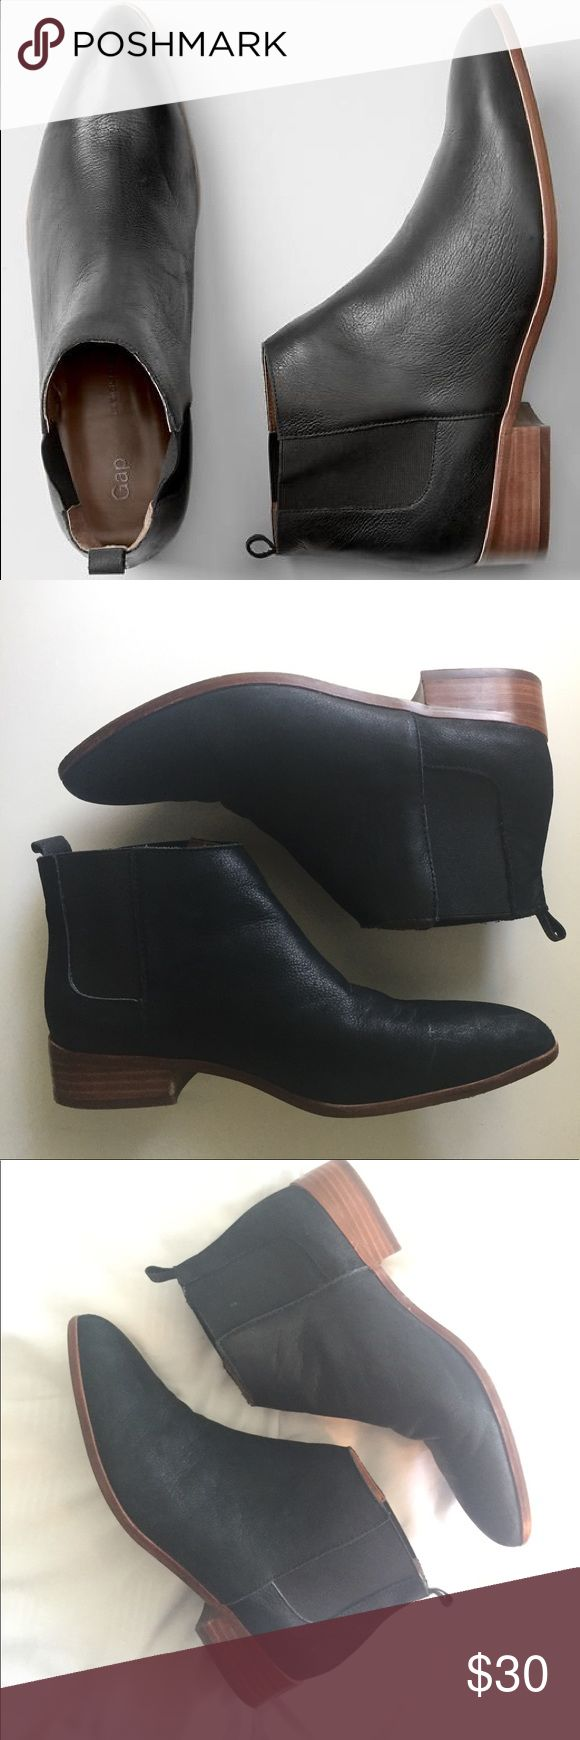 Gap Chelsea Boots These are a great pair of matte black, low heel chelsea boots. These are in pretty good condition with some creasing on the toe area. GAP Shoes